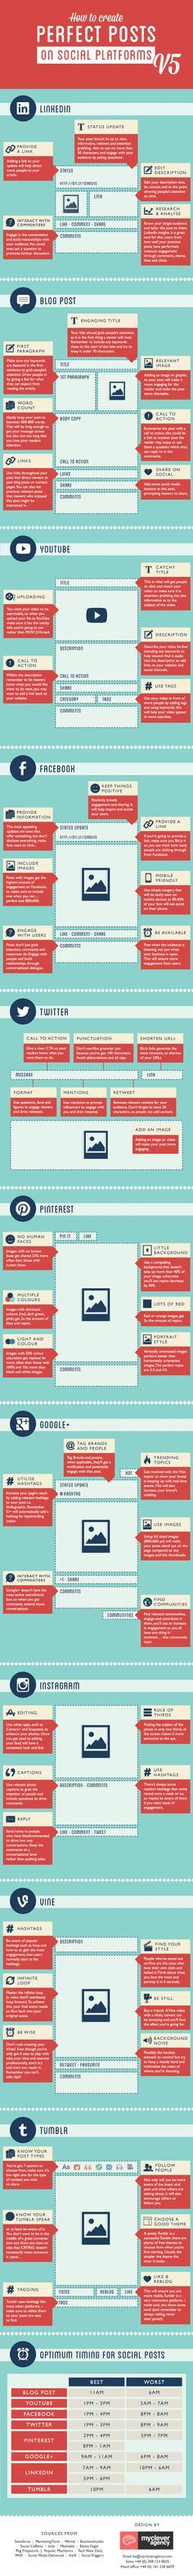 373 best SOCIAL MEDIA MARKETING images on Pinterest Social media - marketing officer job description